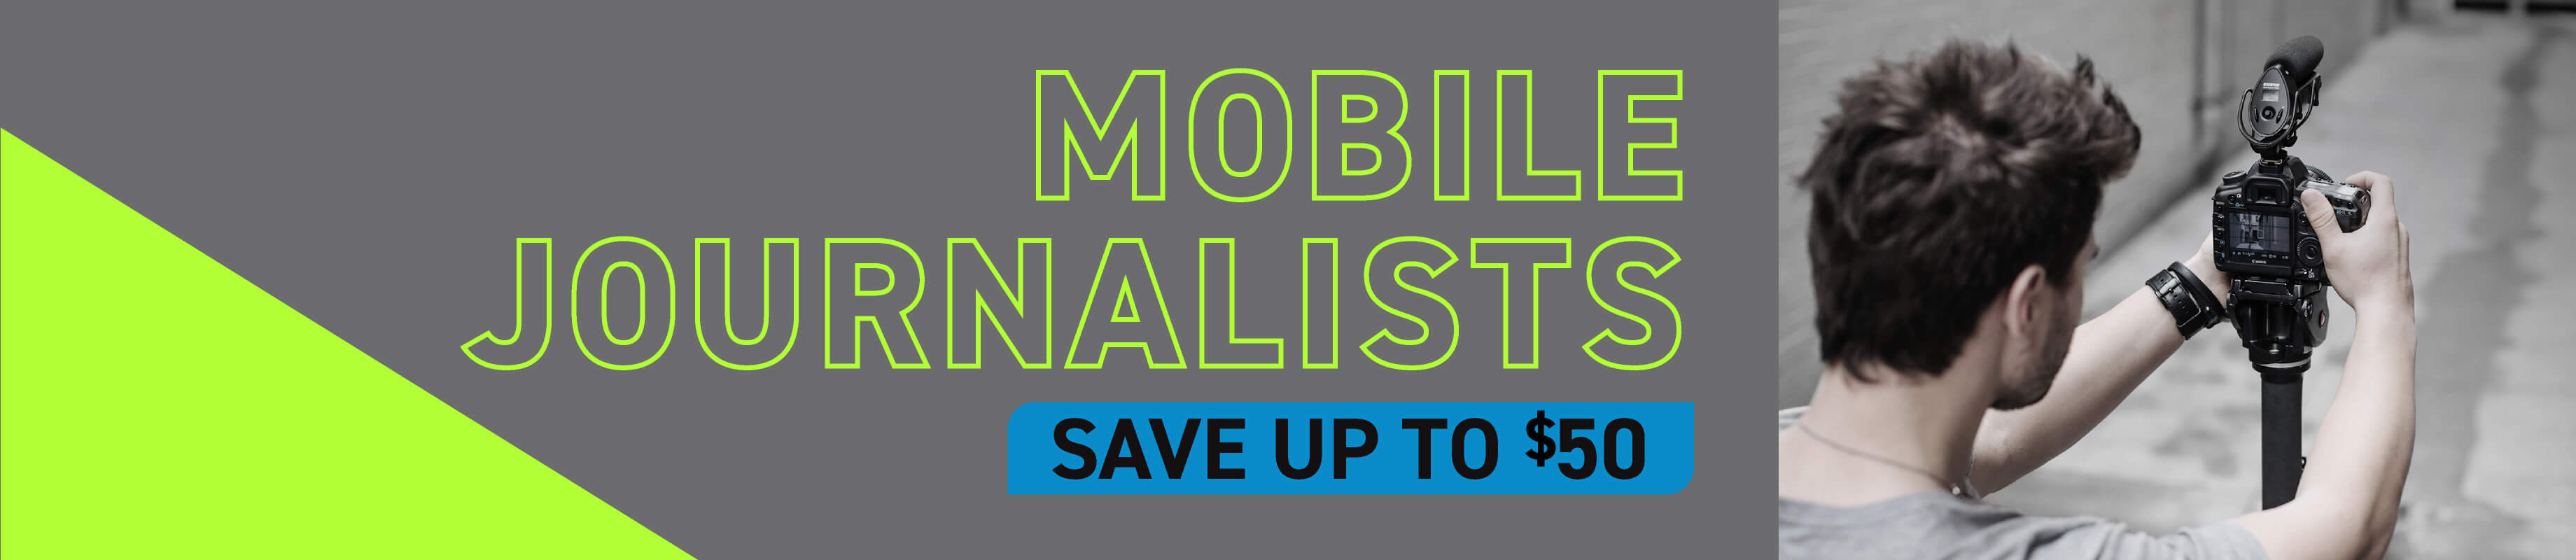 Mobile Journalists | Save up to $50